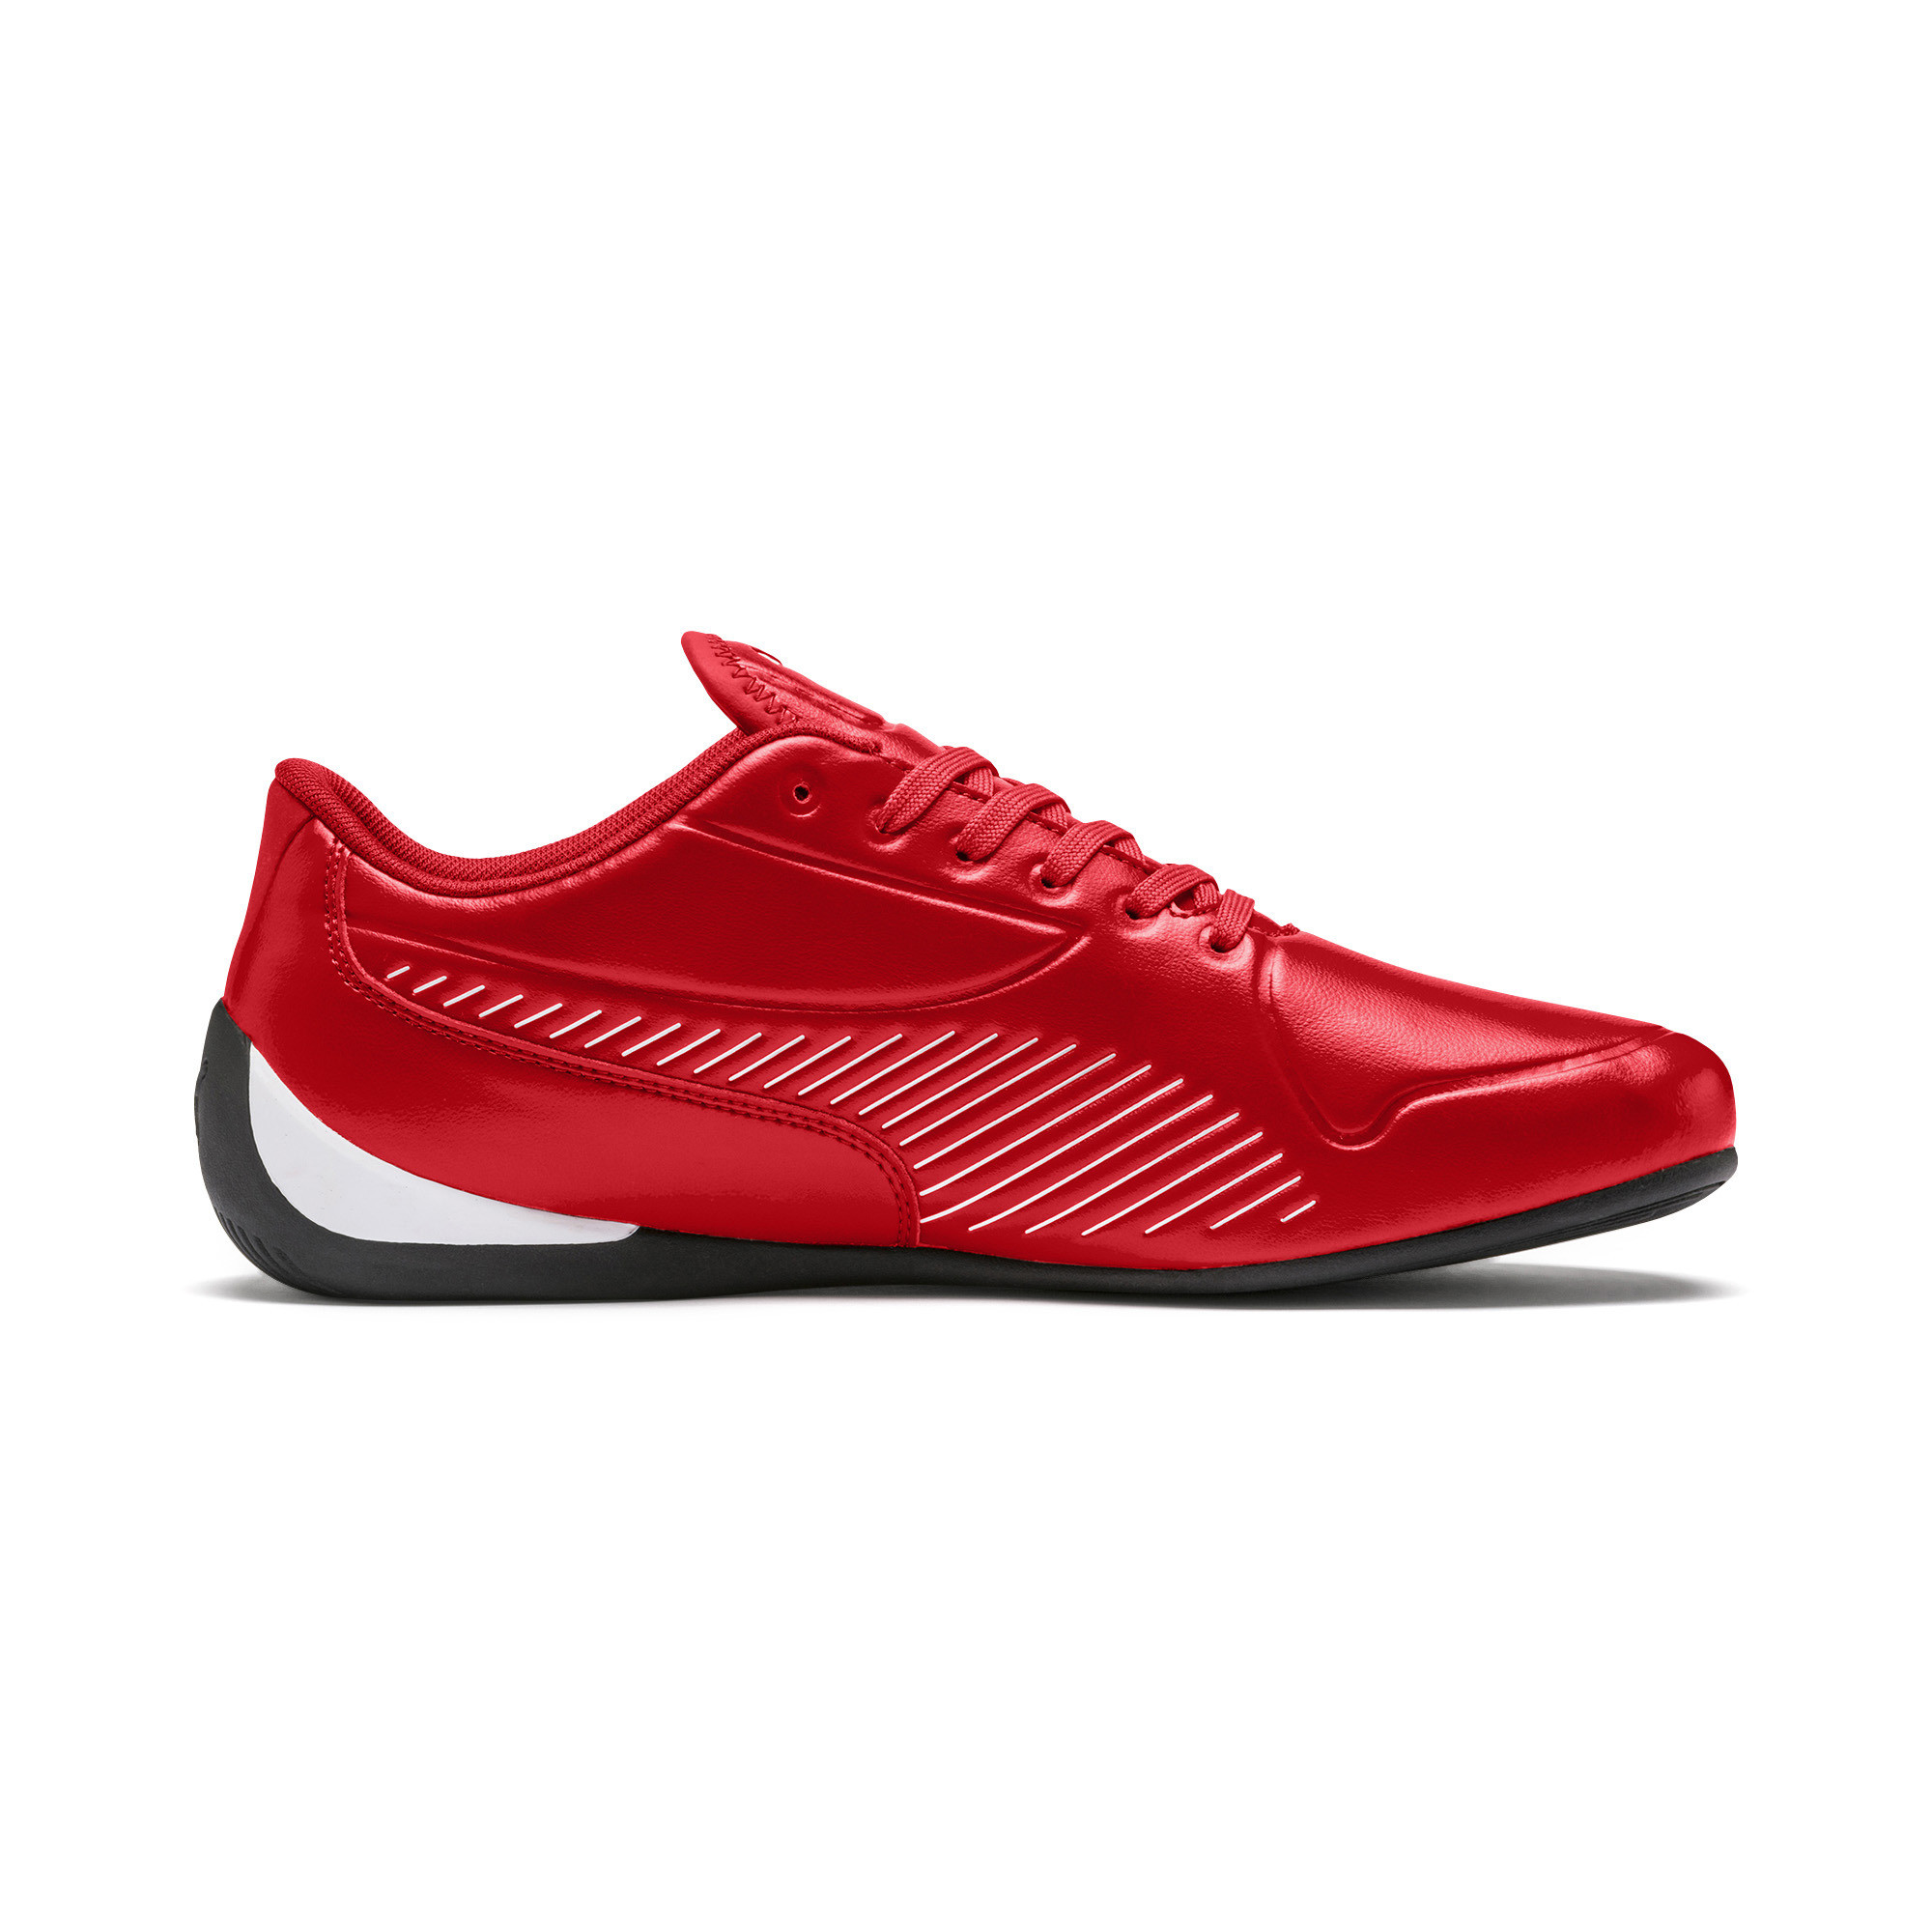 PUMA-Men-039-s-Scuderia-Ferrari-Drift-Cat-7S-Ultra-Shoes thumbnail 19